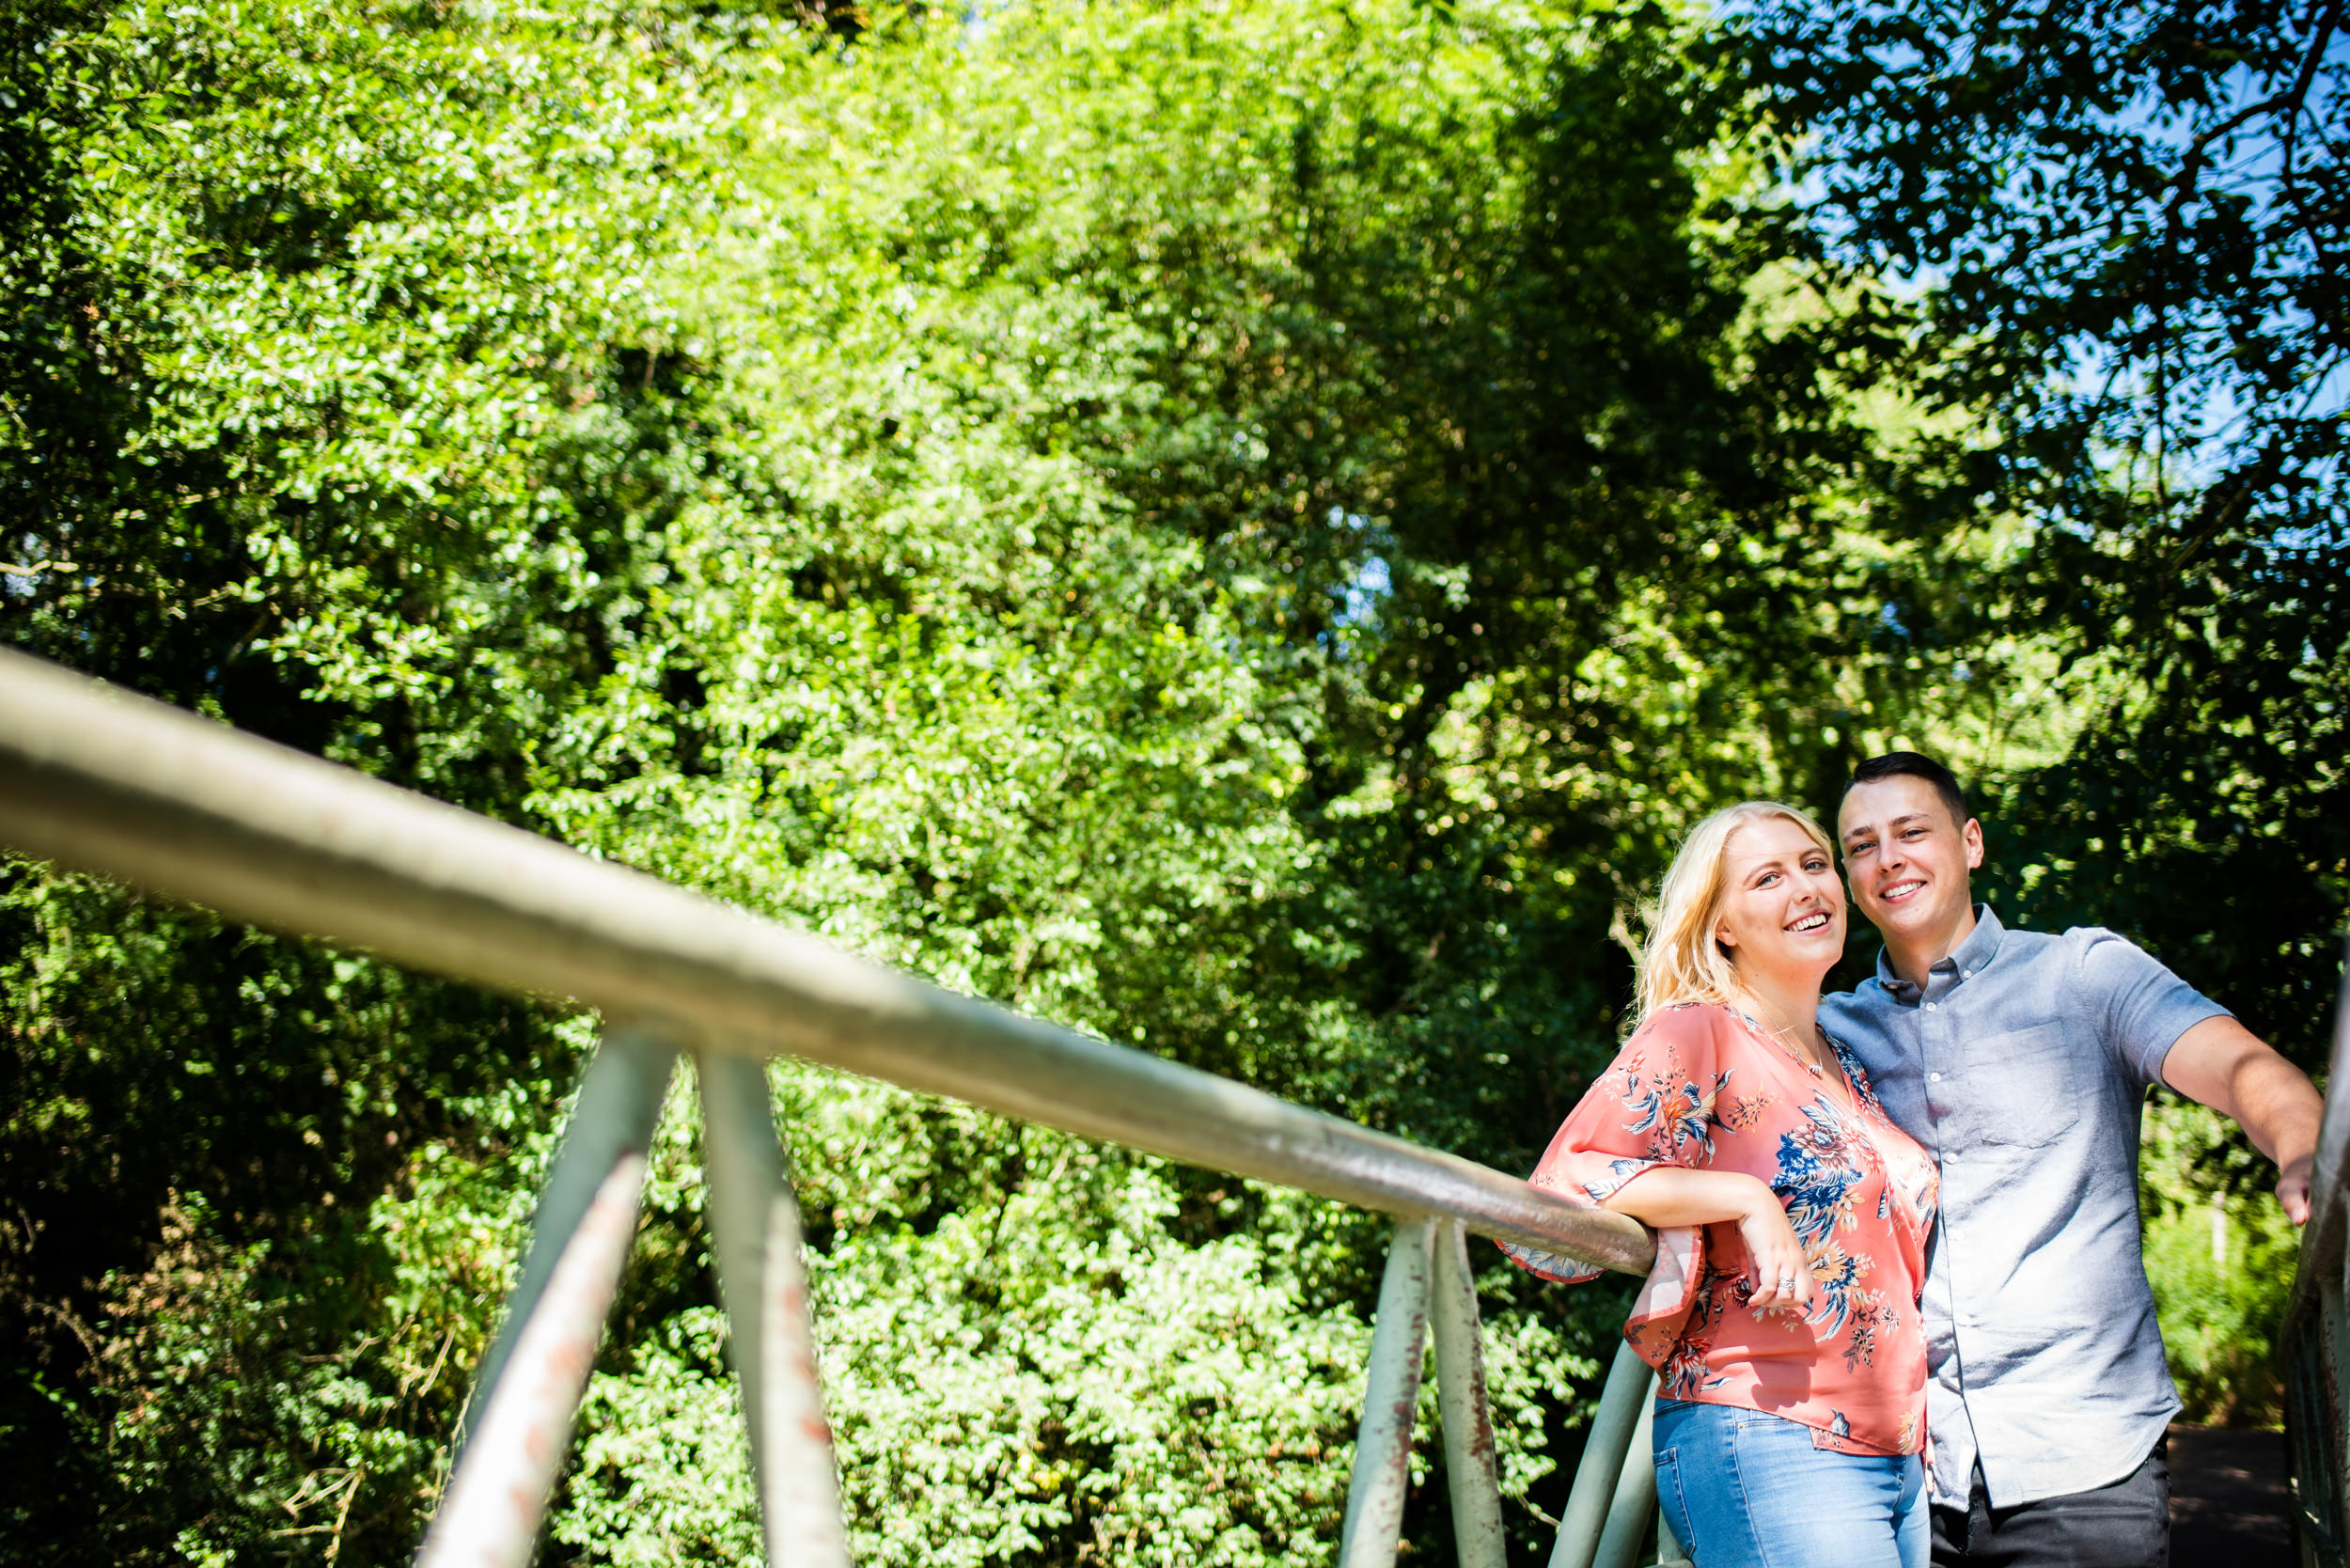 Man with his arm around his partner leaning on a metal bridge railing